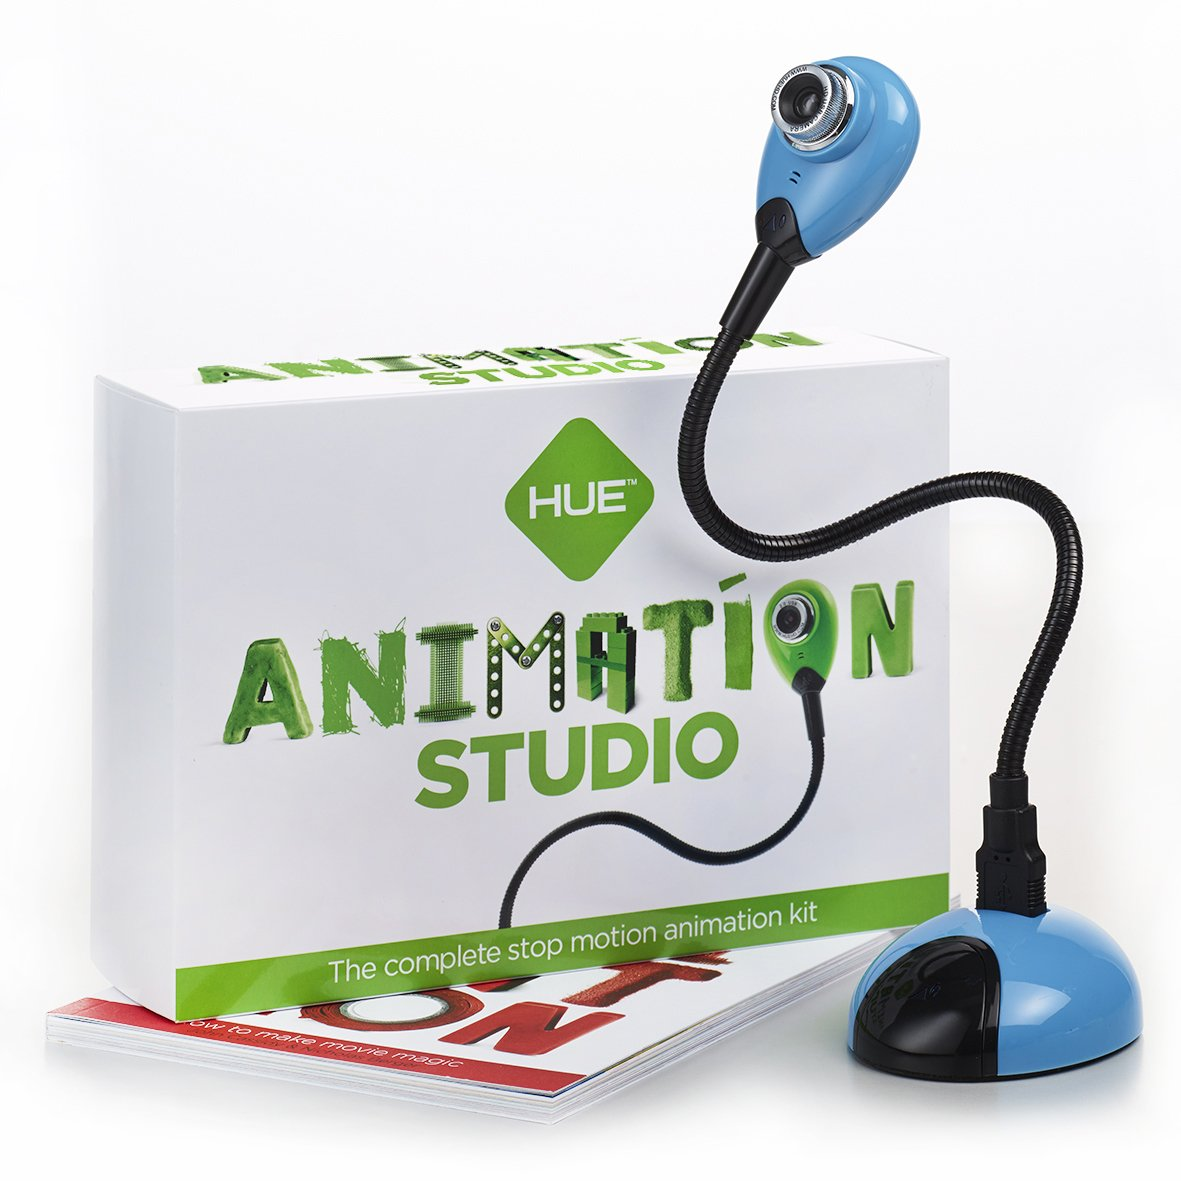 Hue Animation Studio (Blue) For Windows Pcs And Apple Mac Os X: Complete Stop.. 18